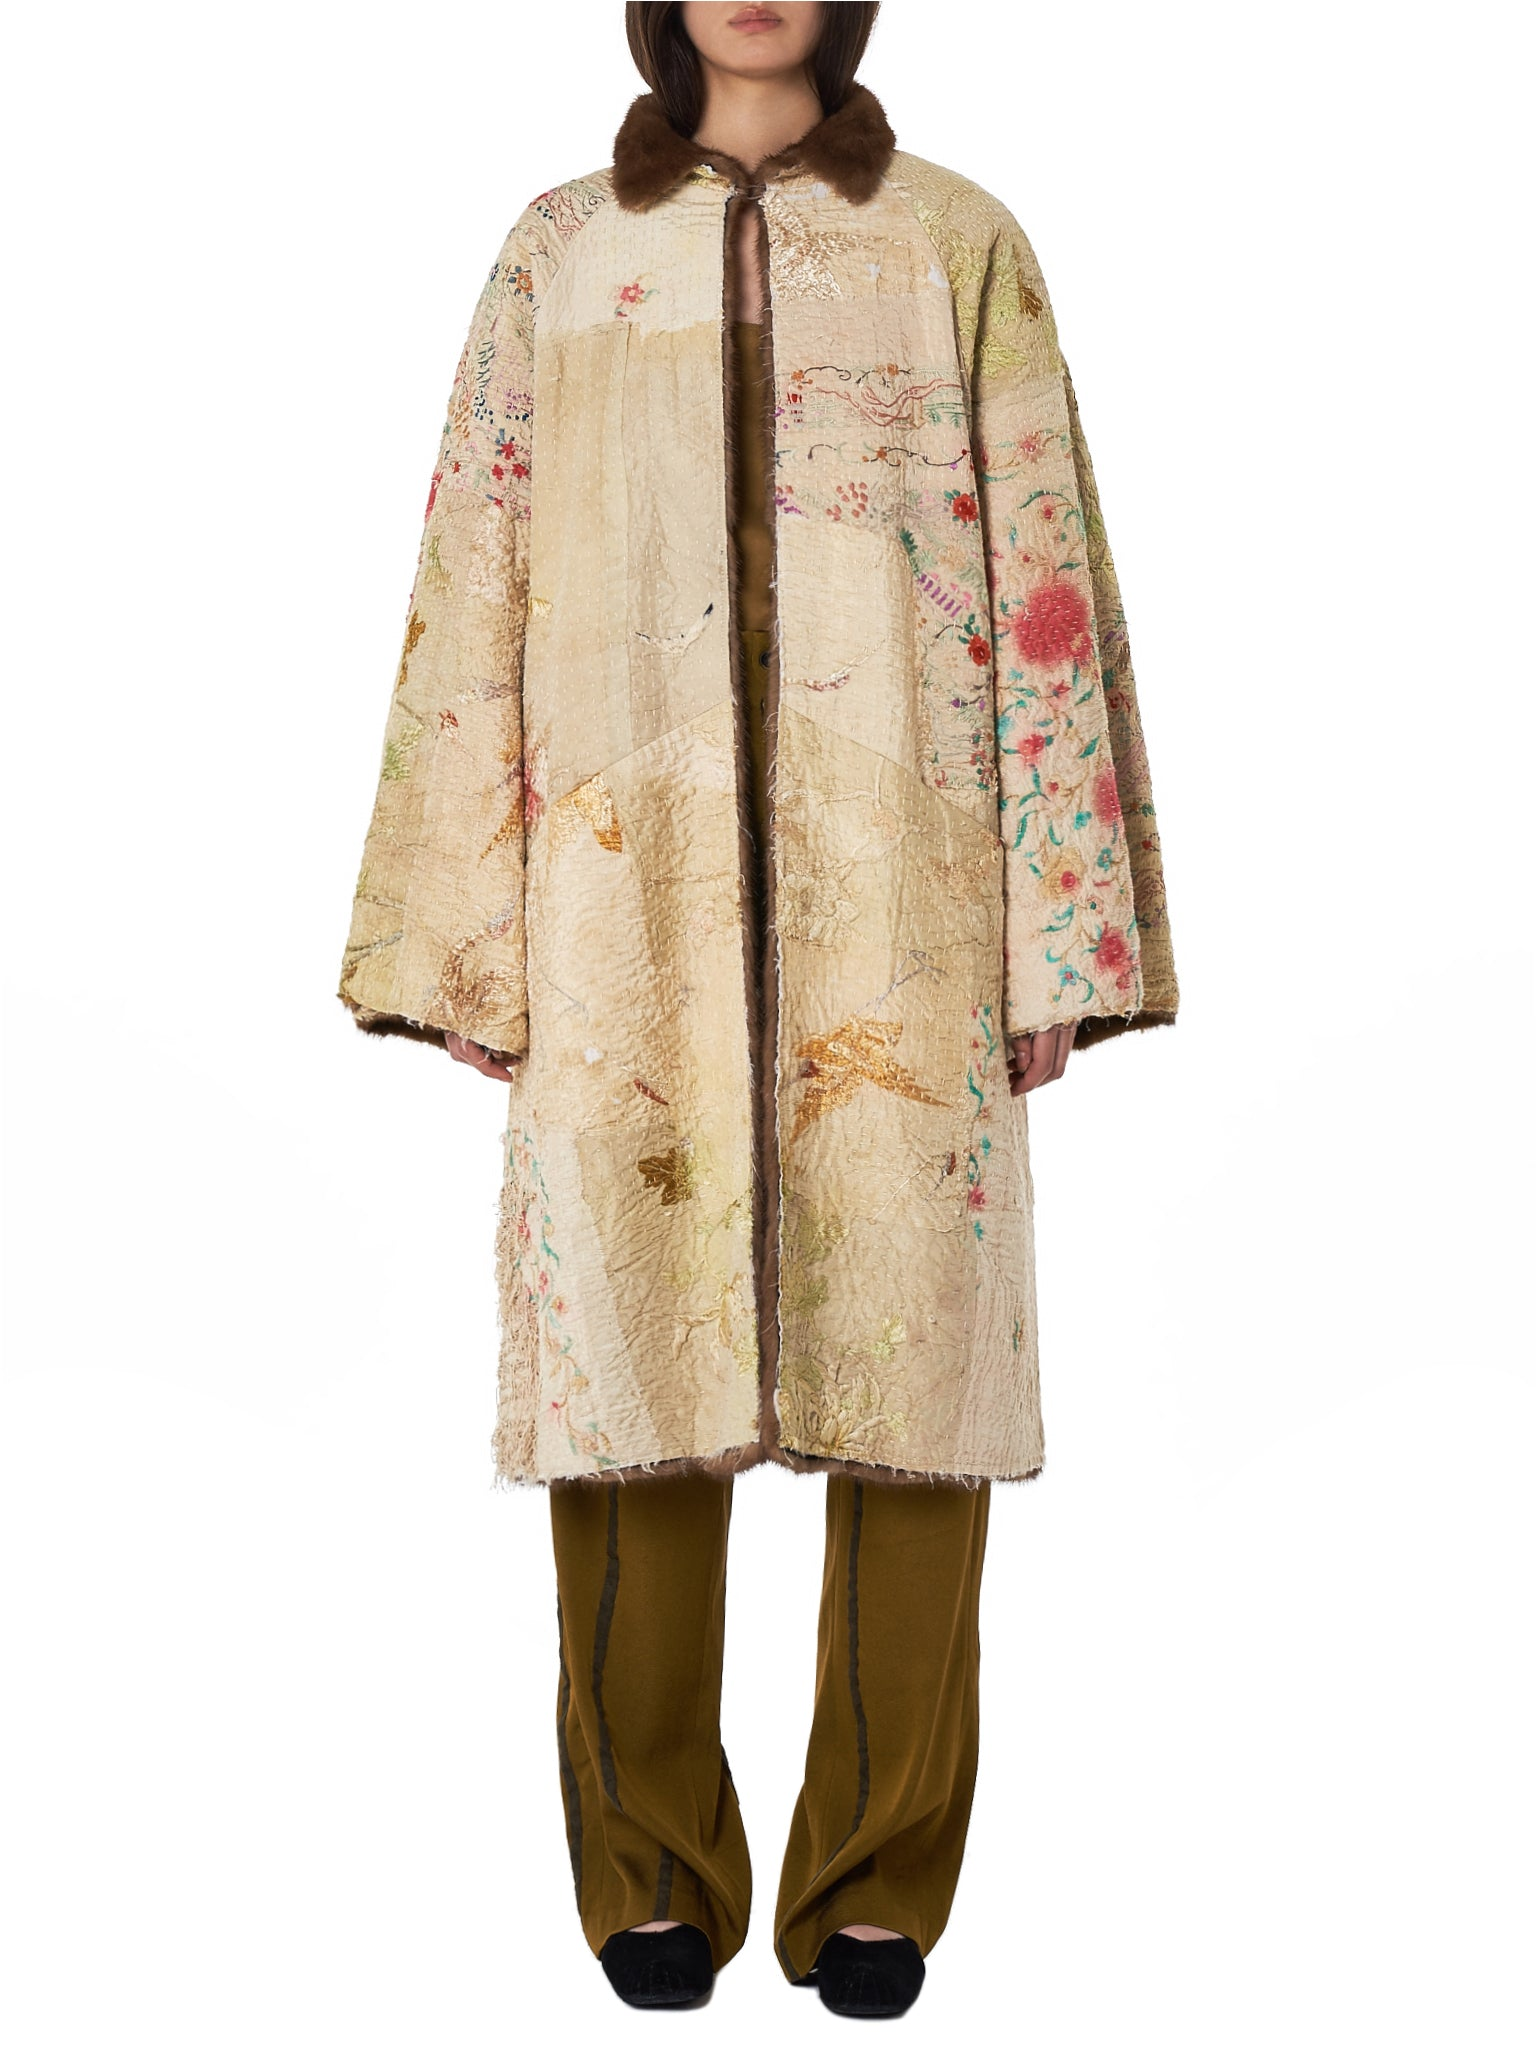 By Walid Fur Silk Coat - Hlorenzo Front